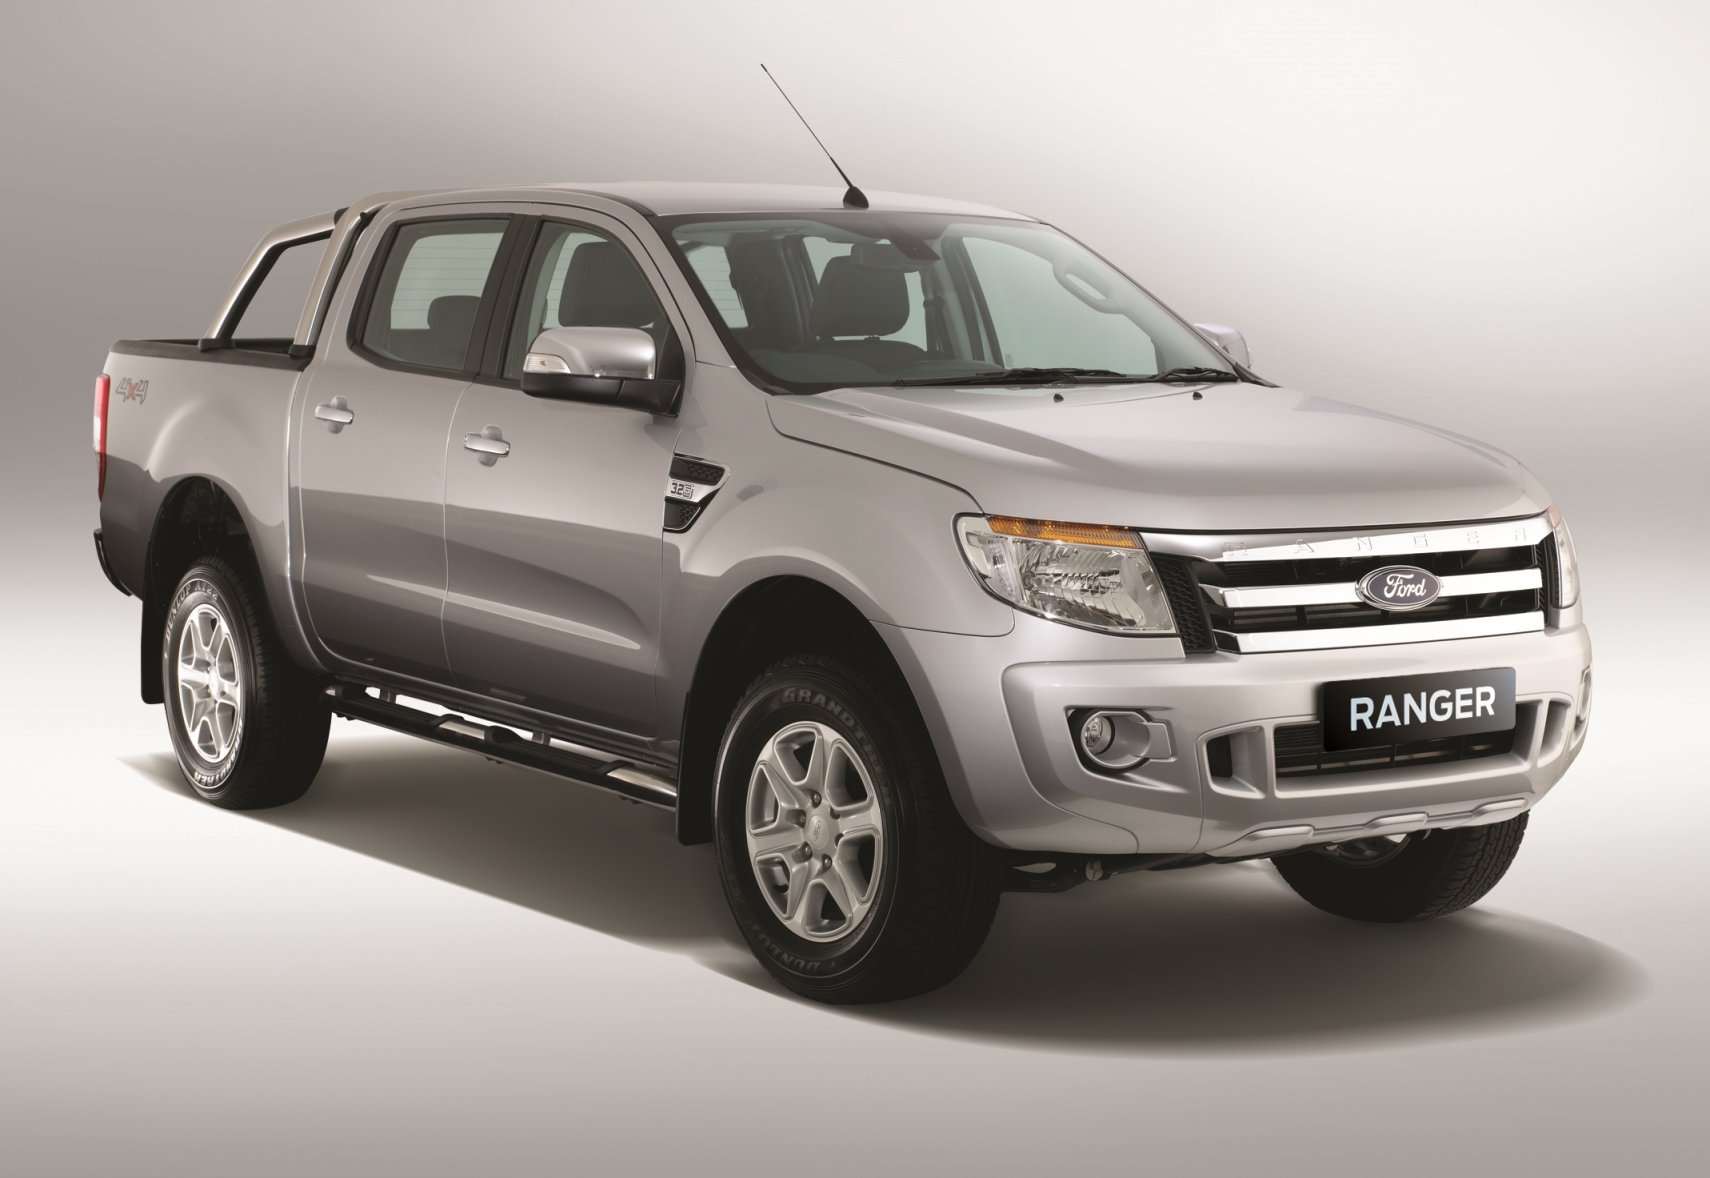 Ford Ranger New Variant, 3.2L XLT 6-speed Manual Launched At RM99,888.